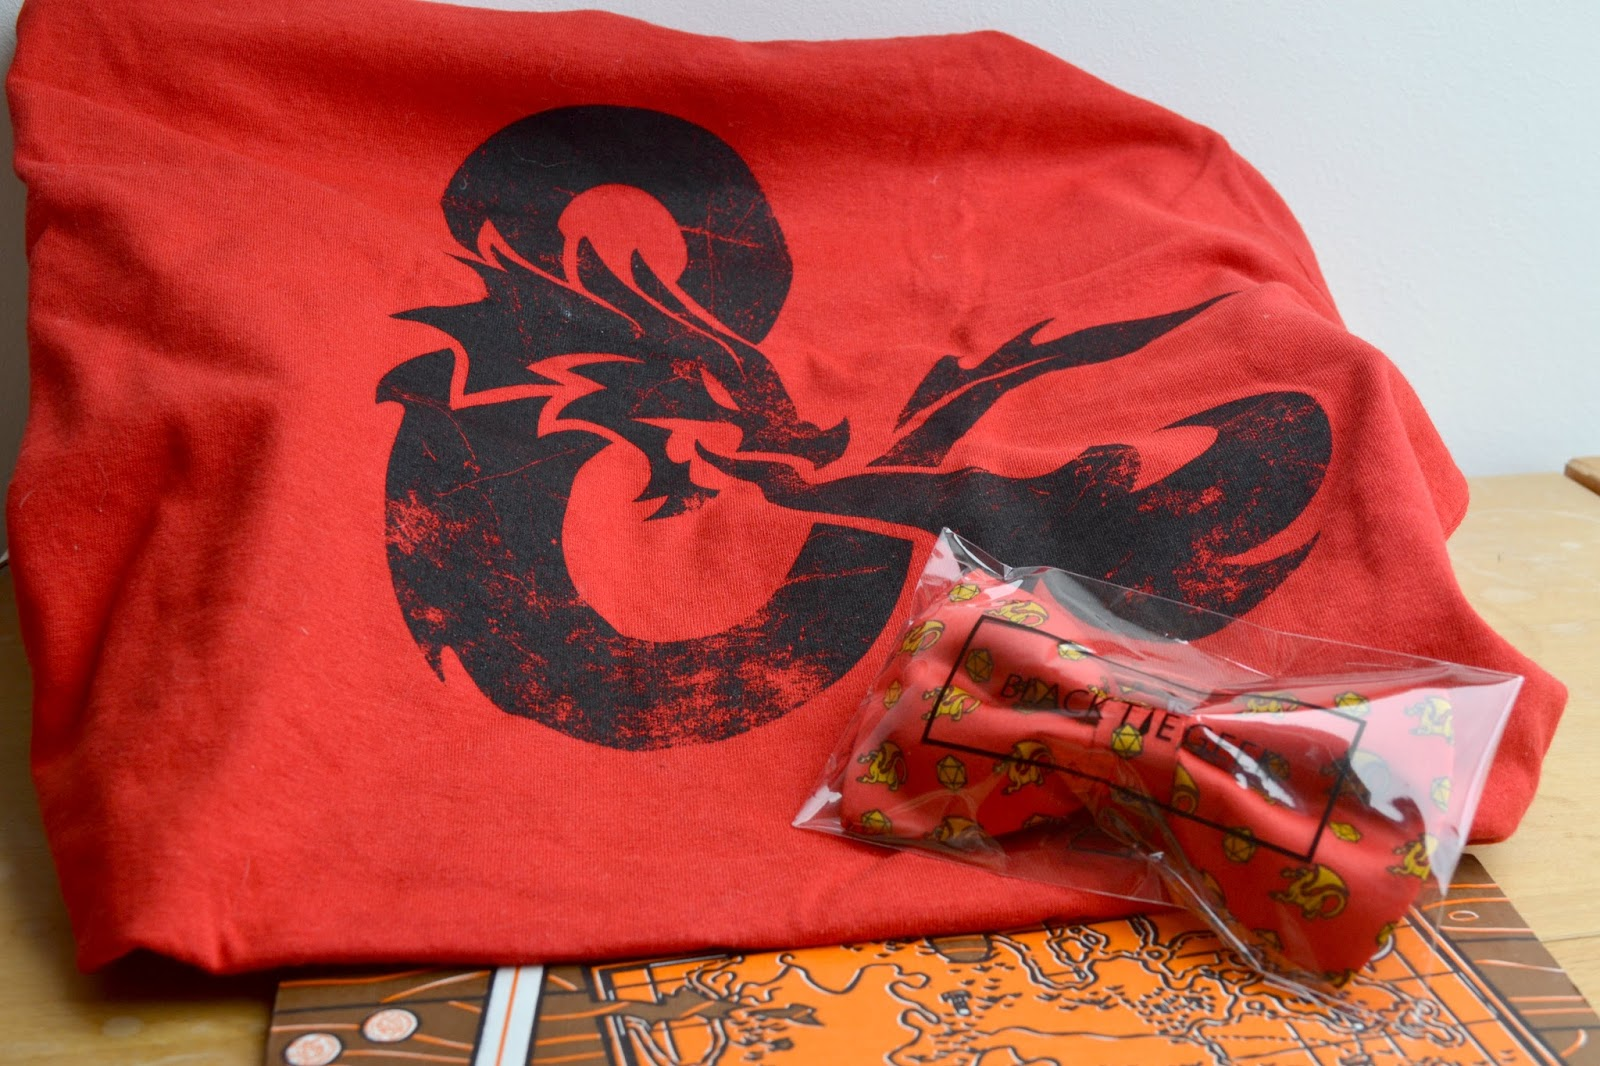 Loot Crate unboxing Dungeon & Dragons shirt bowtie